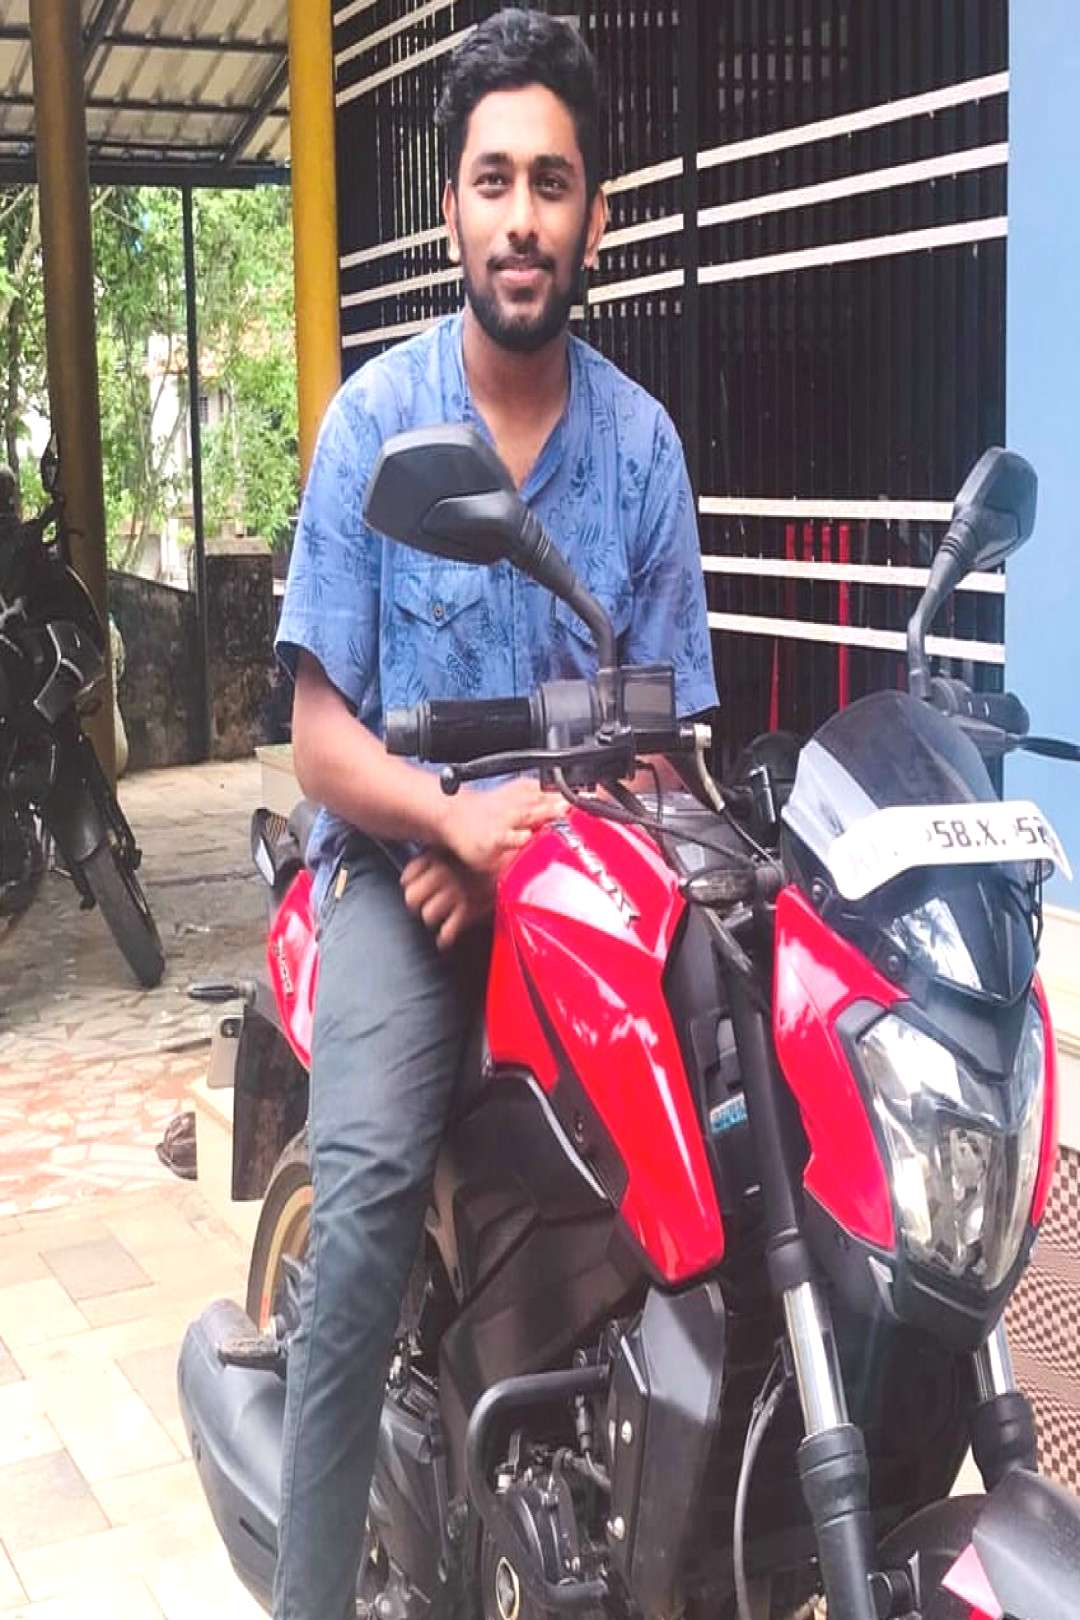 muhammed sinan on June 09 2020 1 person sitting and motorcycle